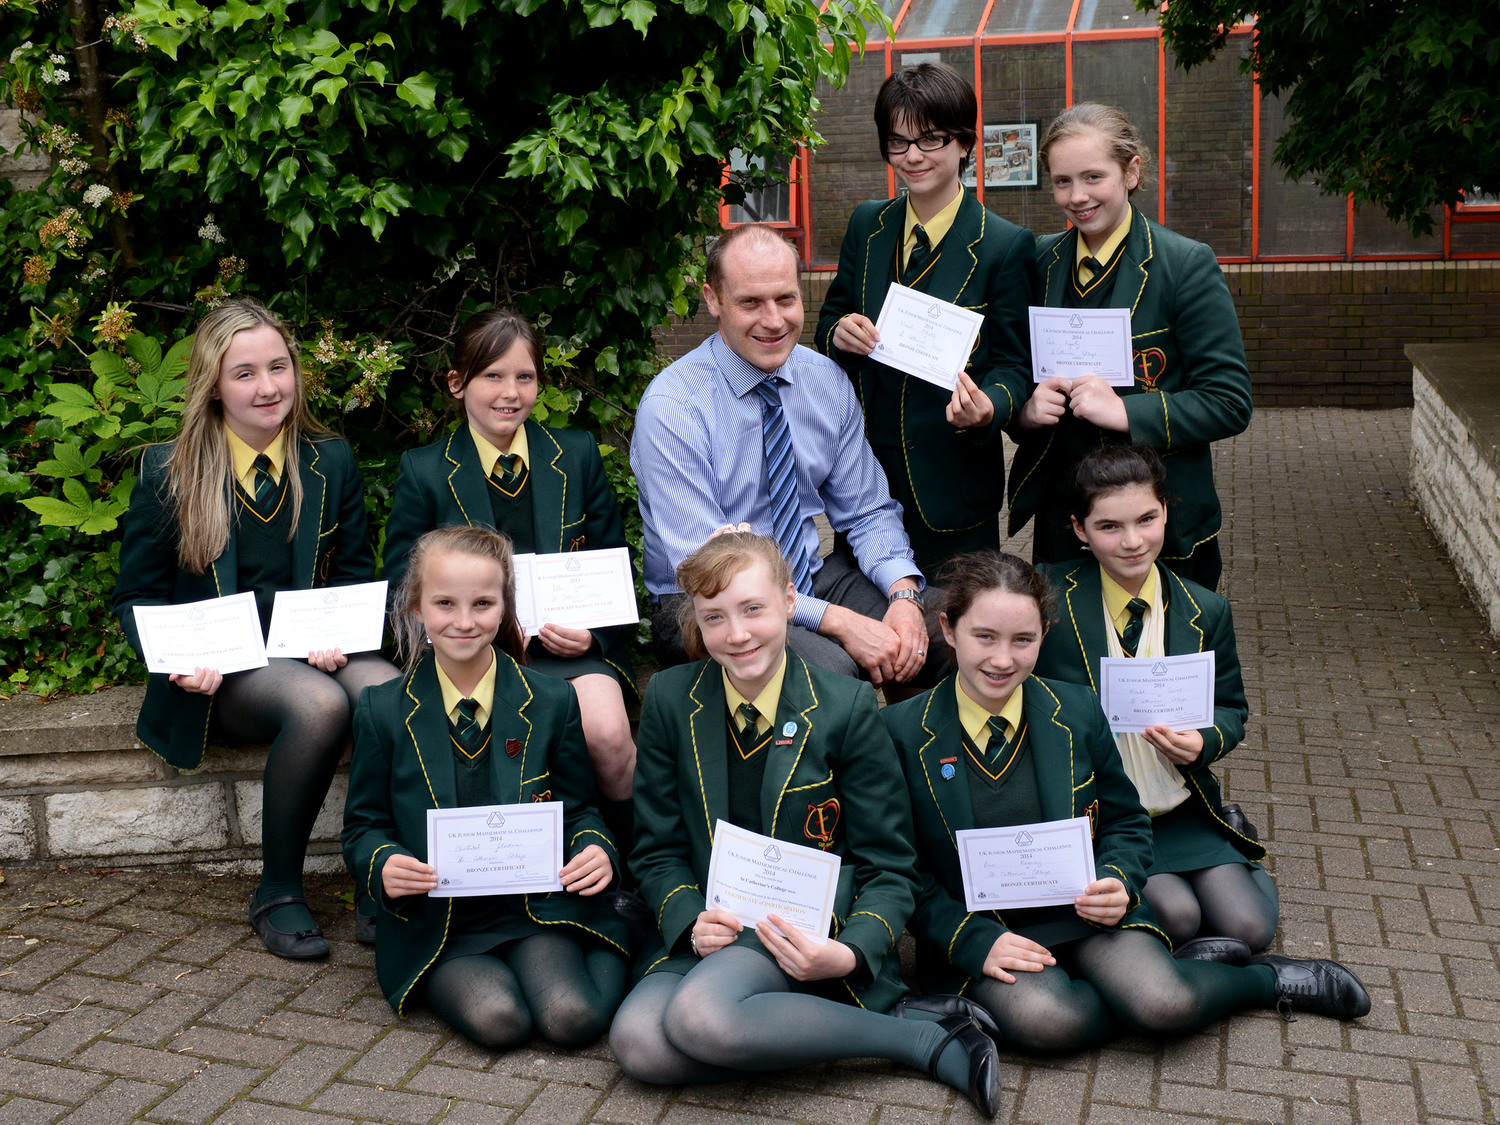 St Catherine's College students who received awards in the UK Maths Challenge 2014, pictured with Head of Maths, John O'Neill